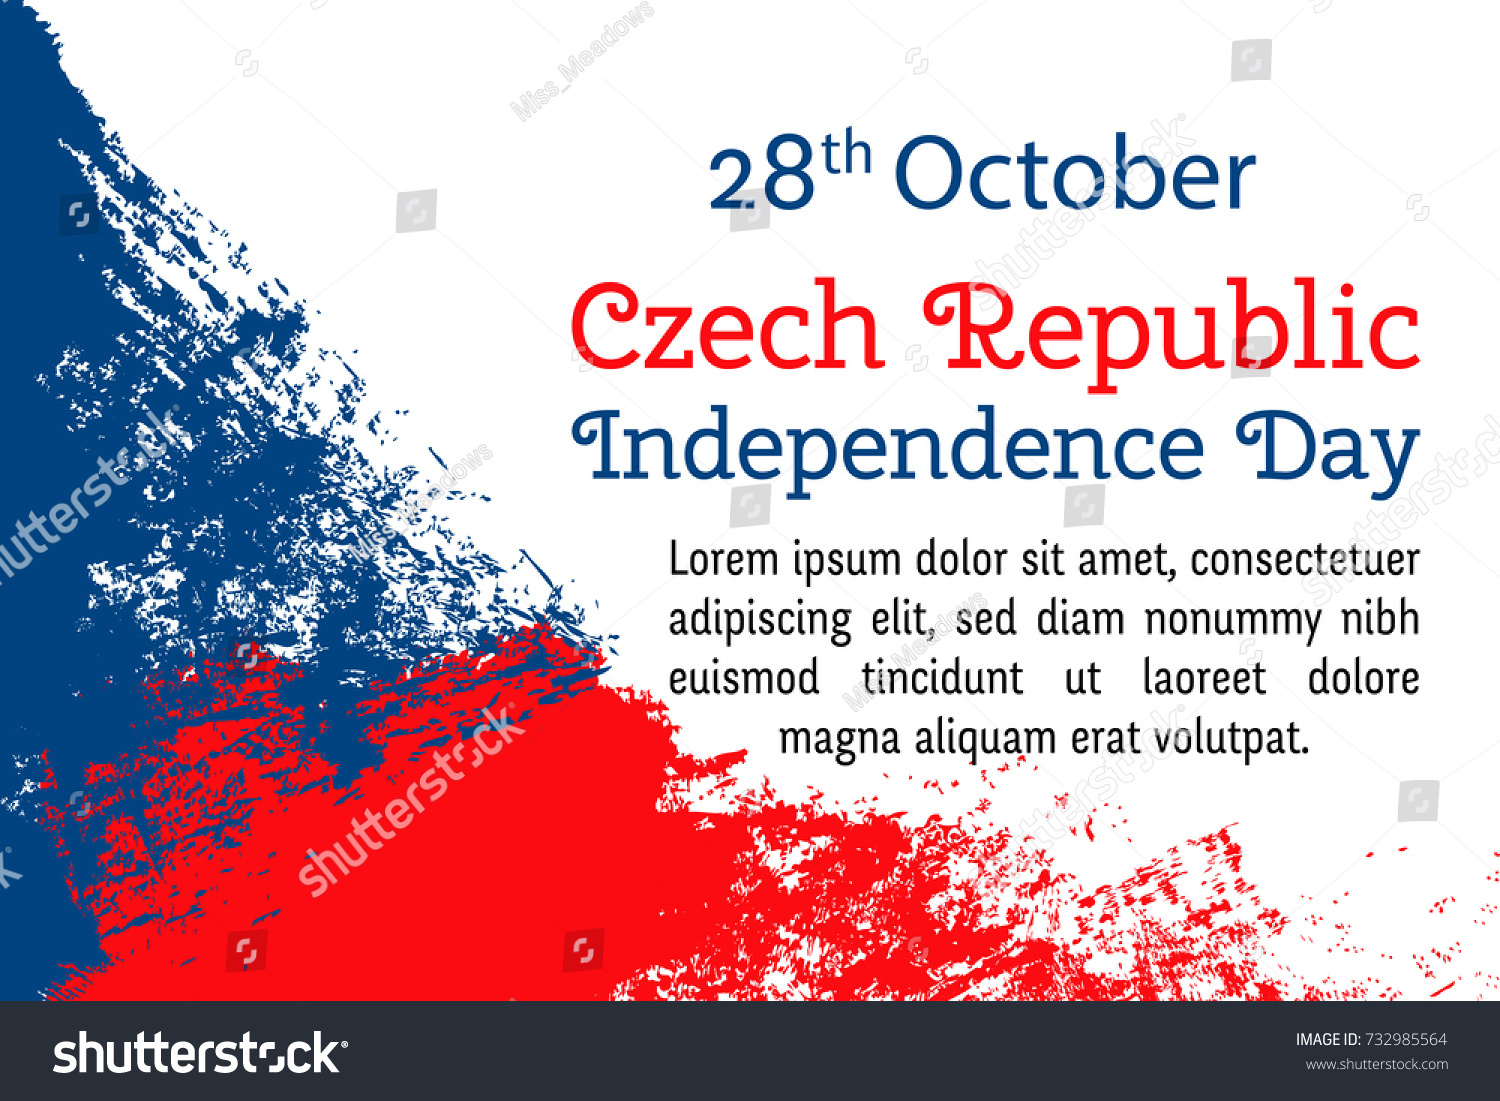 Vector Illustration Czech Republic Independence Day Stock Vector